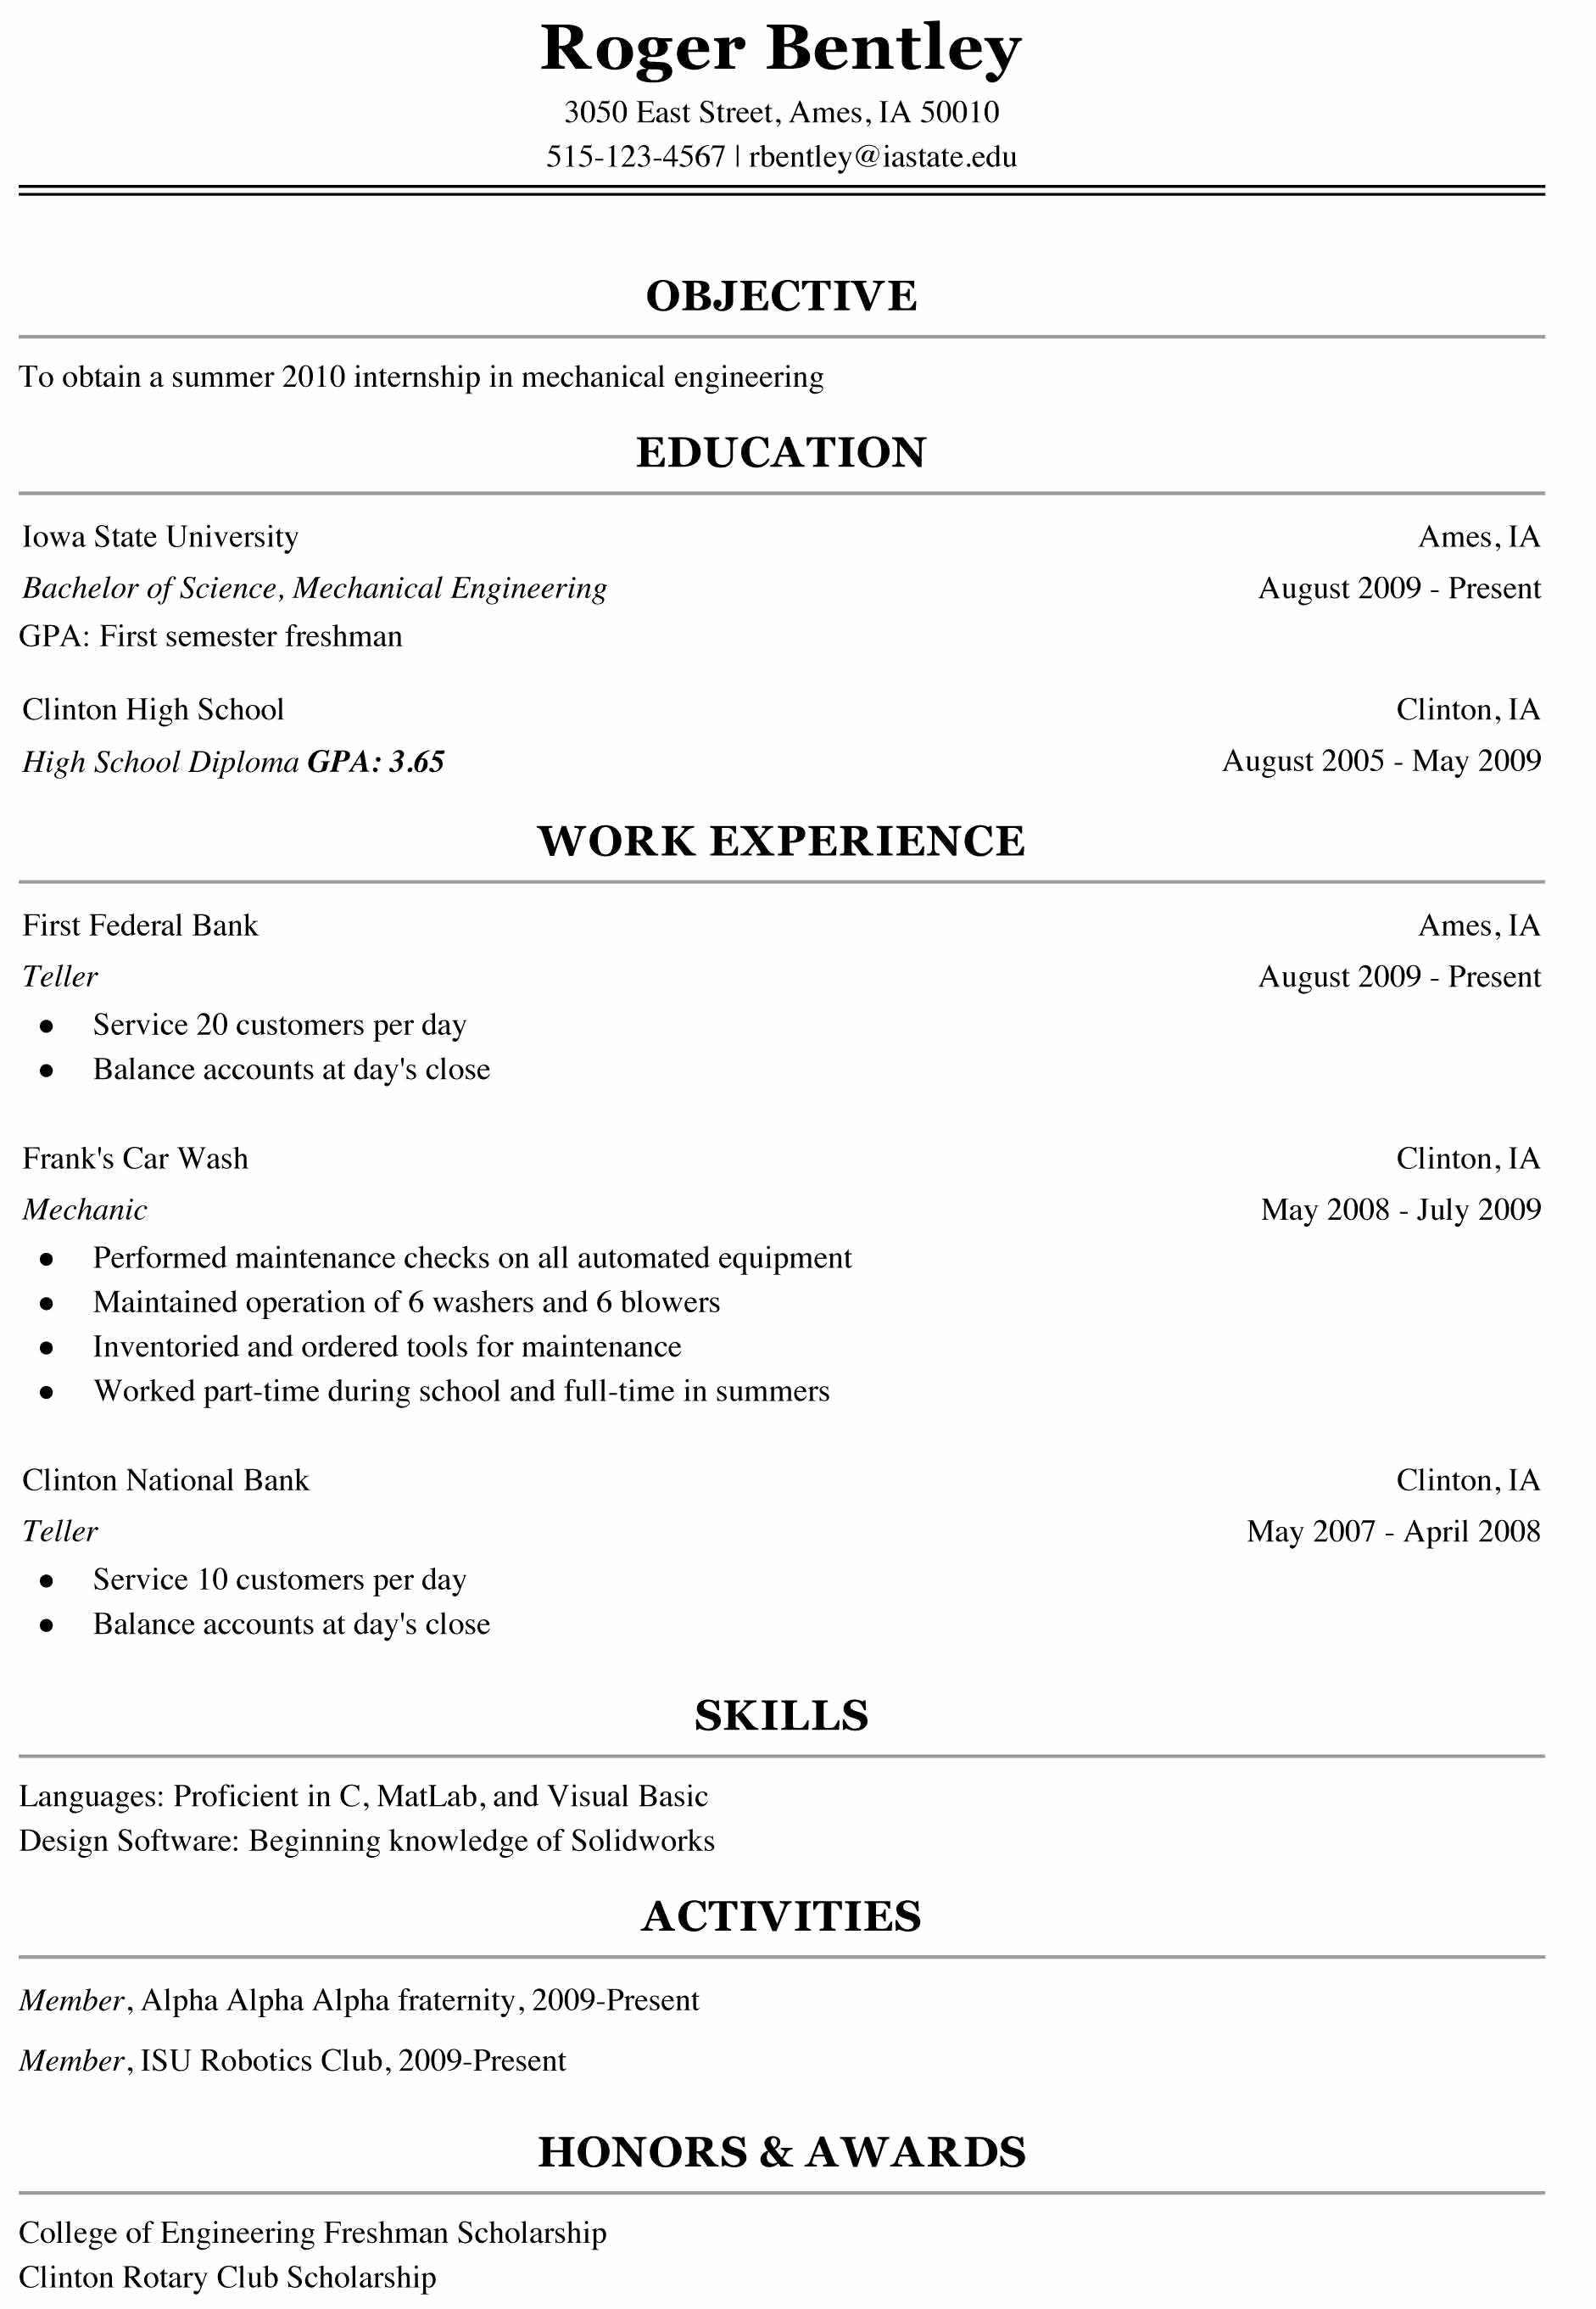 First Year College Student Resume